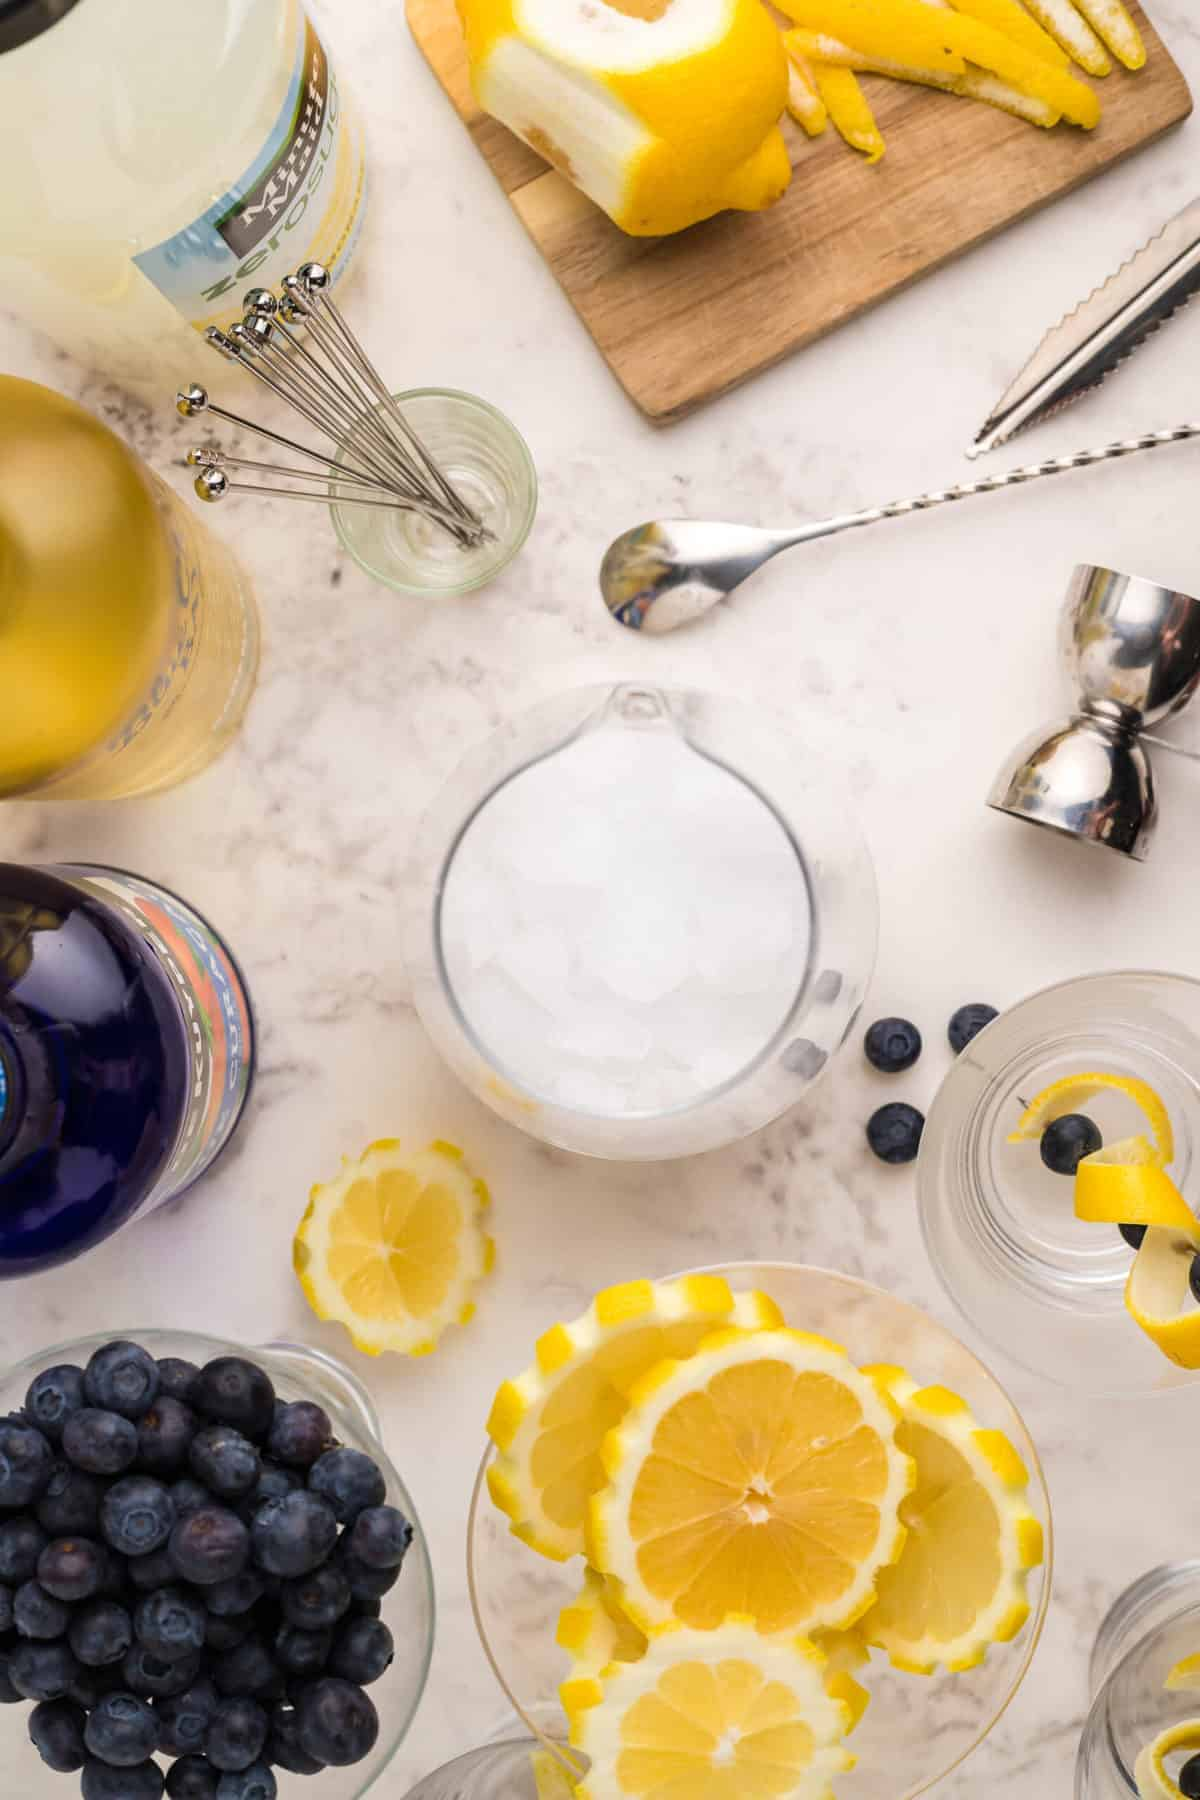 Overhead Image of ingredients for cocktail